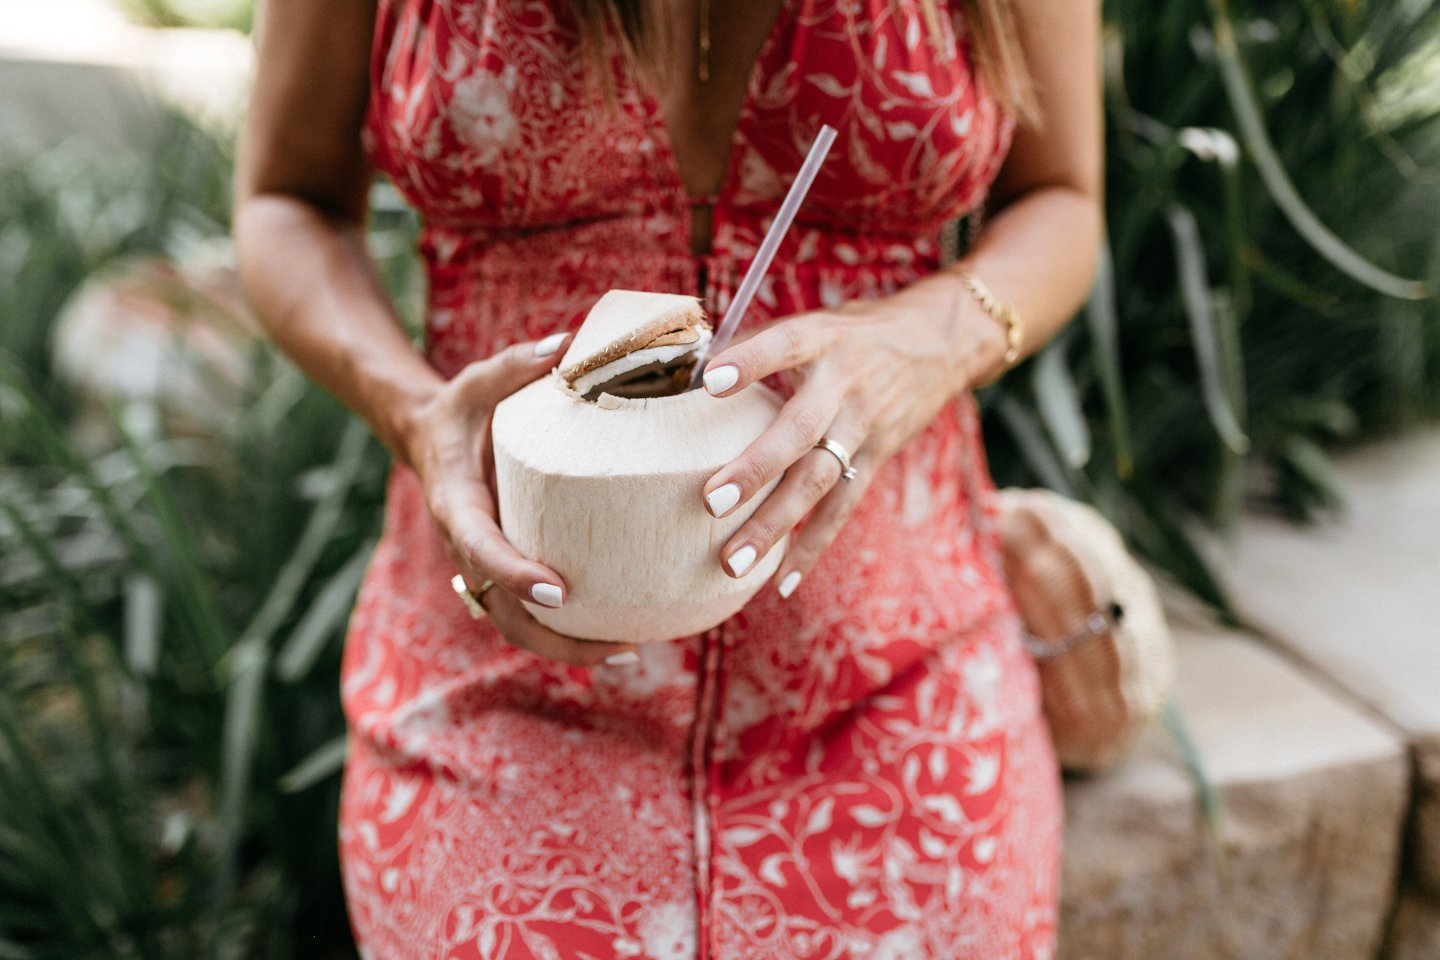 coconut water fashion blogger in red dress